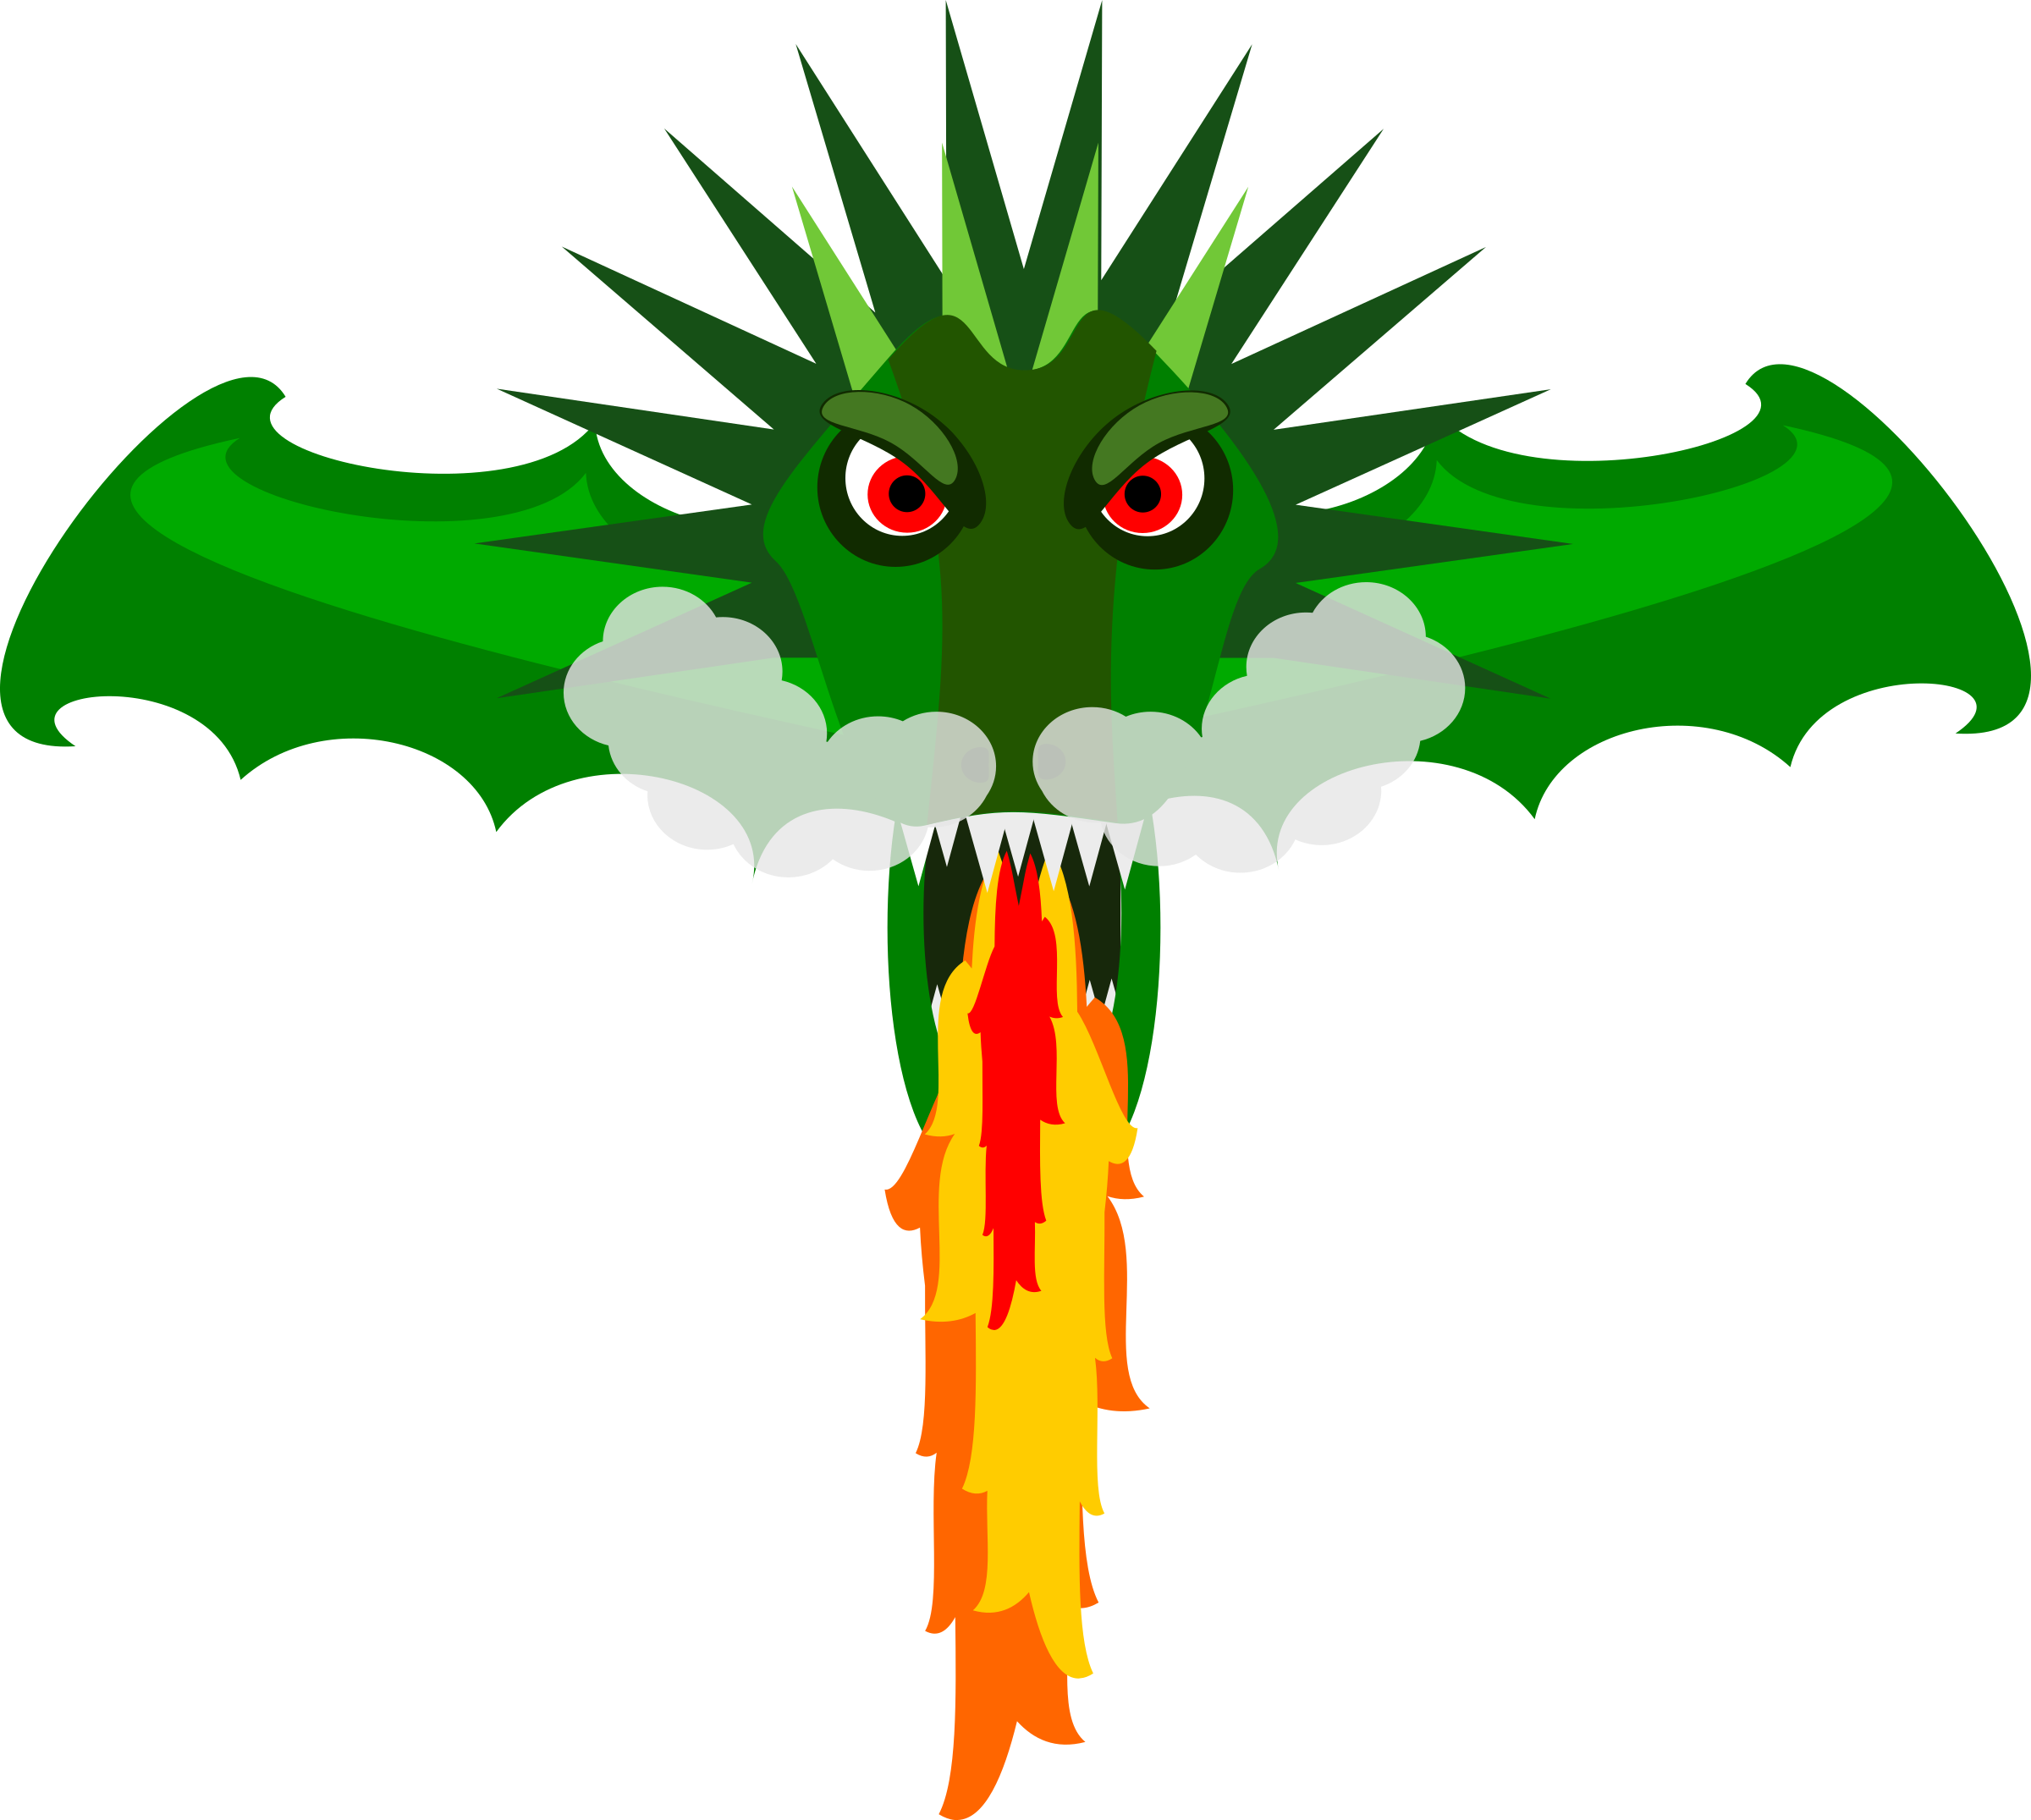 Wing clipart animated. Dragon head at getdrawings